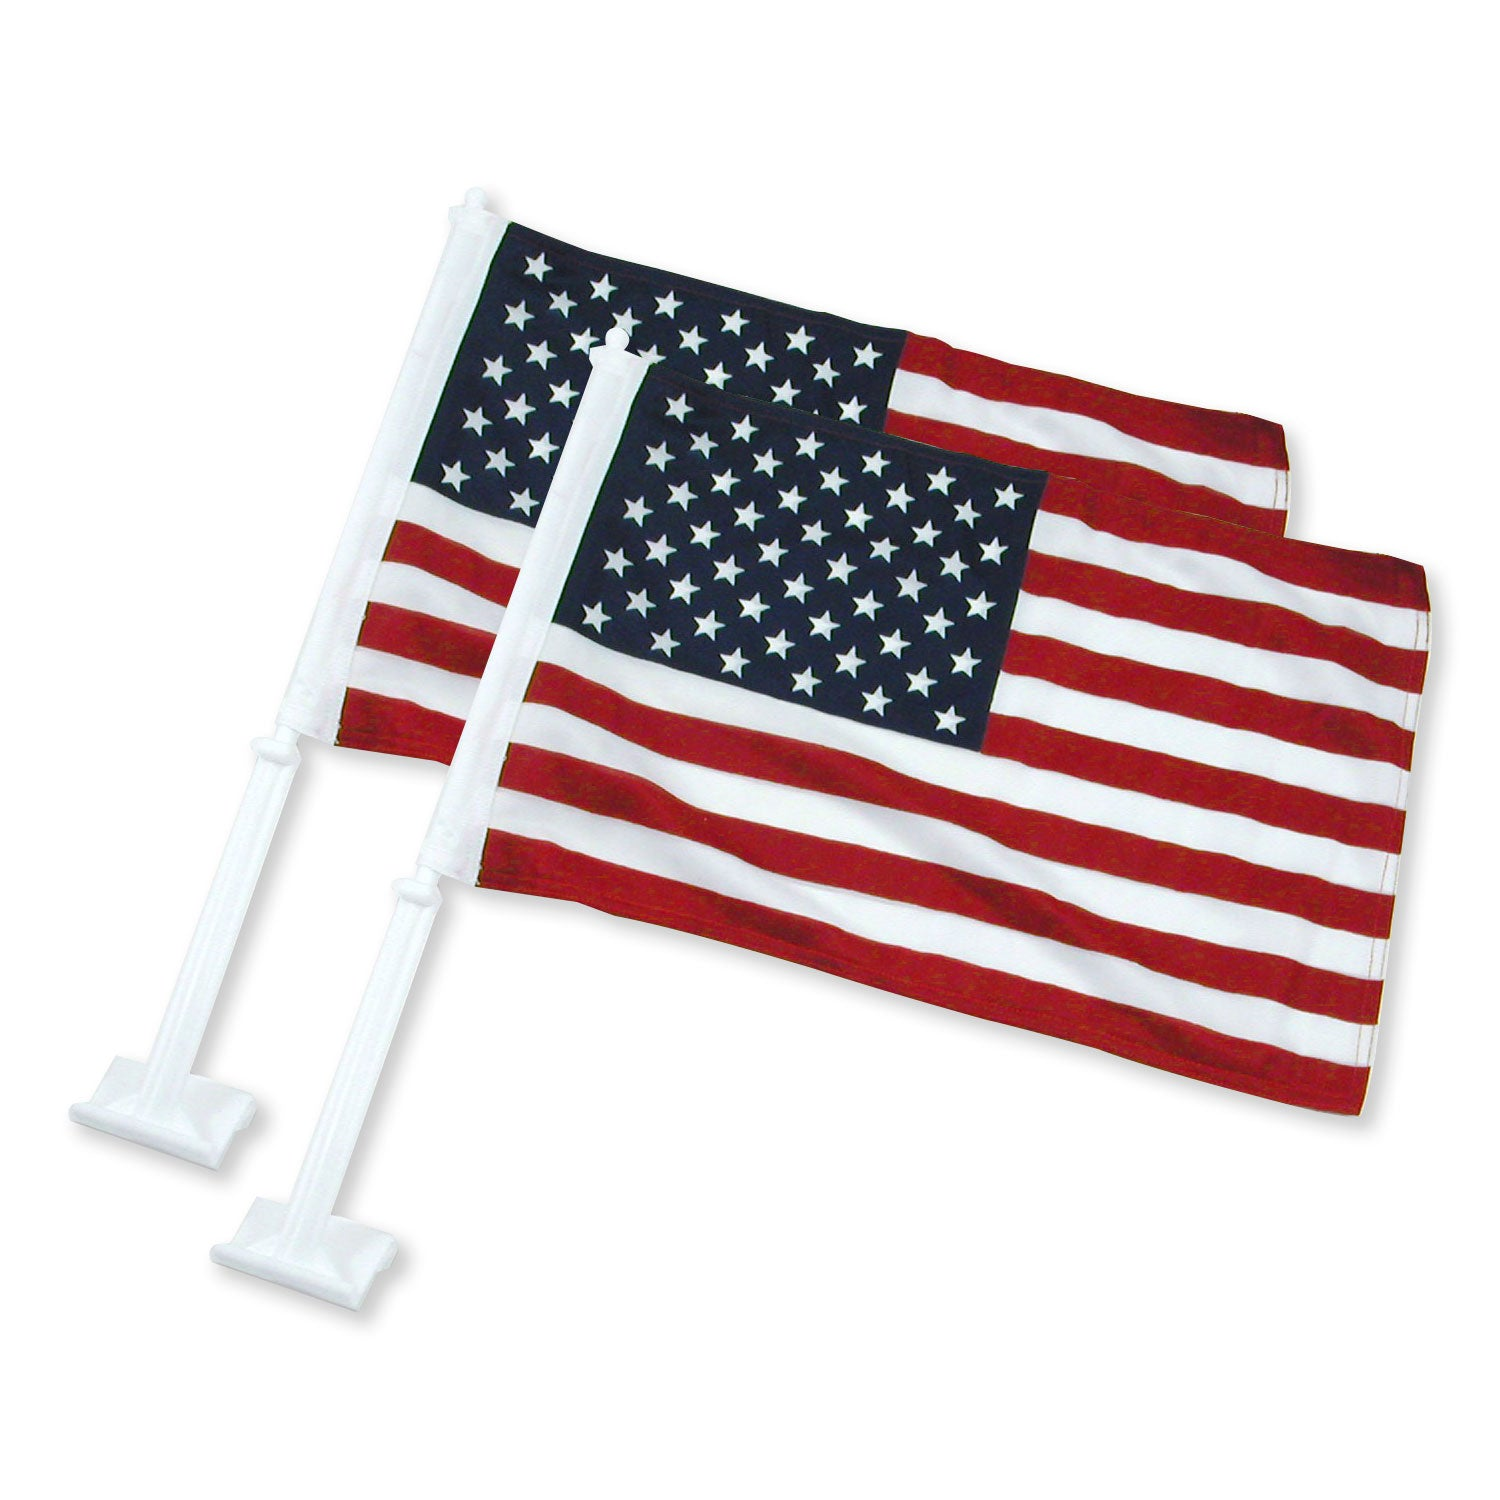 American Car Flags (2-Pack)